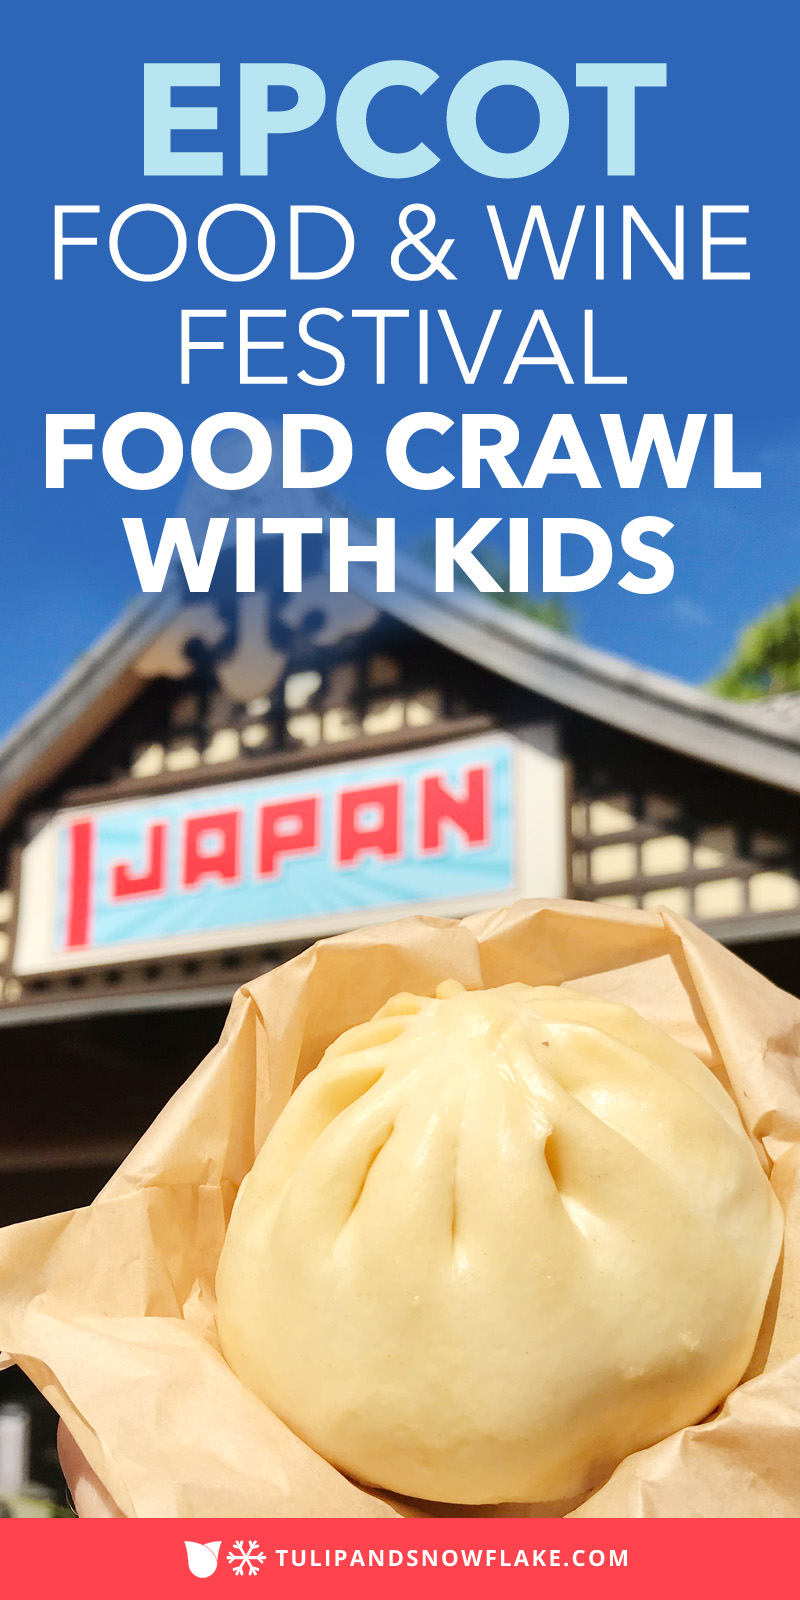 Epcot Food and Wine Festival Food Crawl with Kids